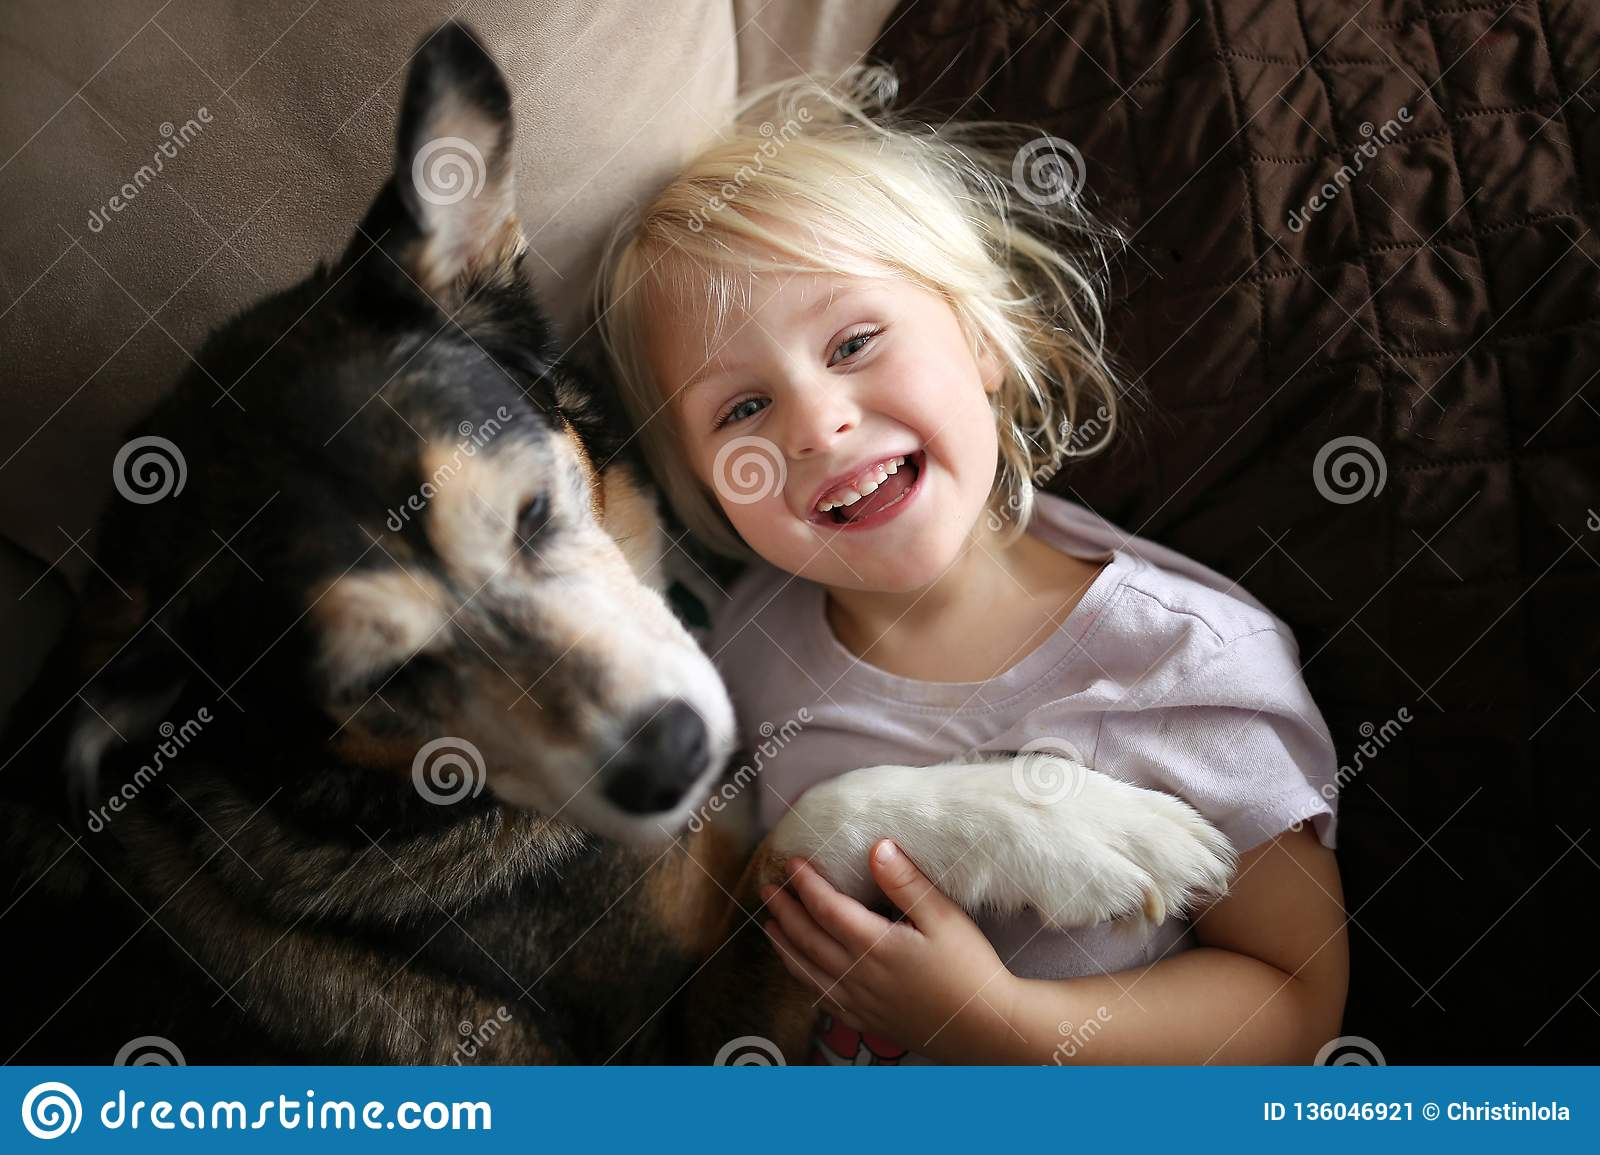 Happy, Laughing Little Girl Child Hugging Pet Dog on Couch